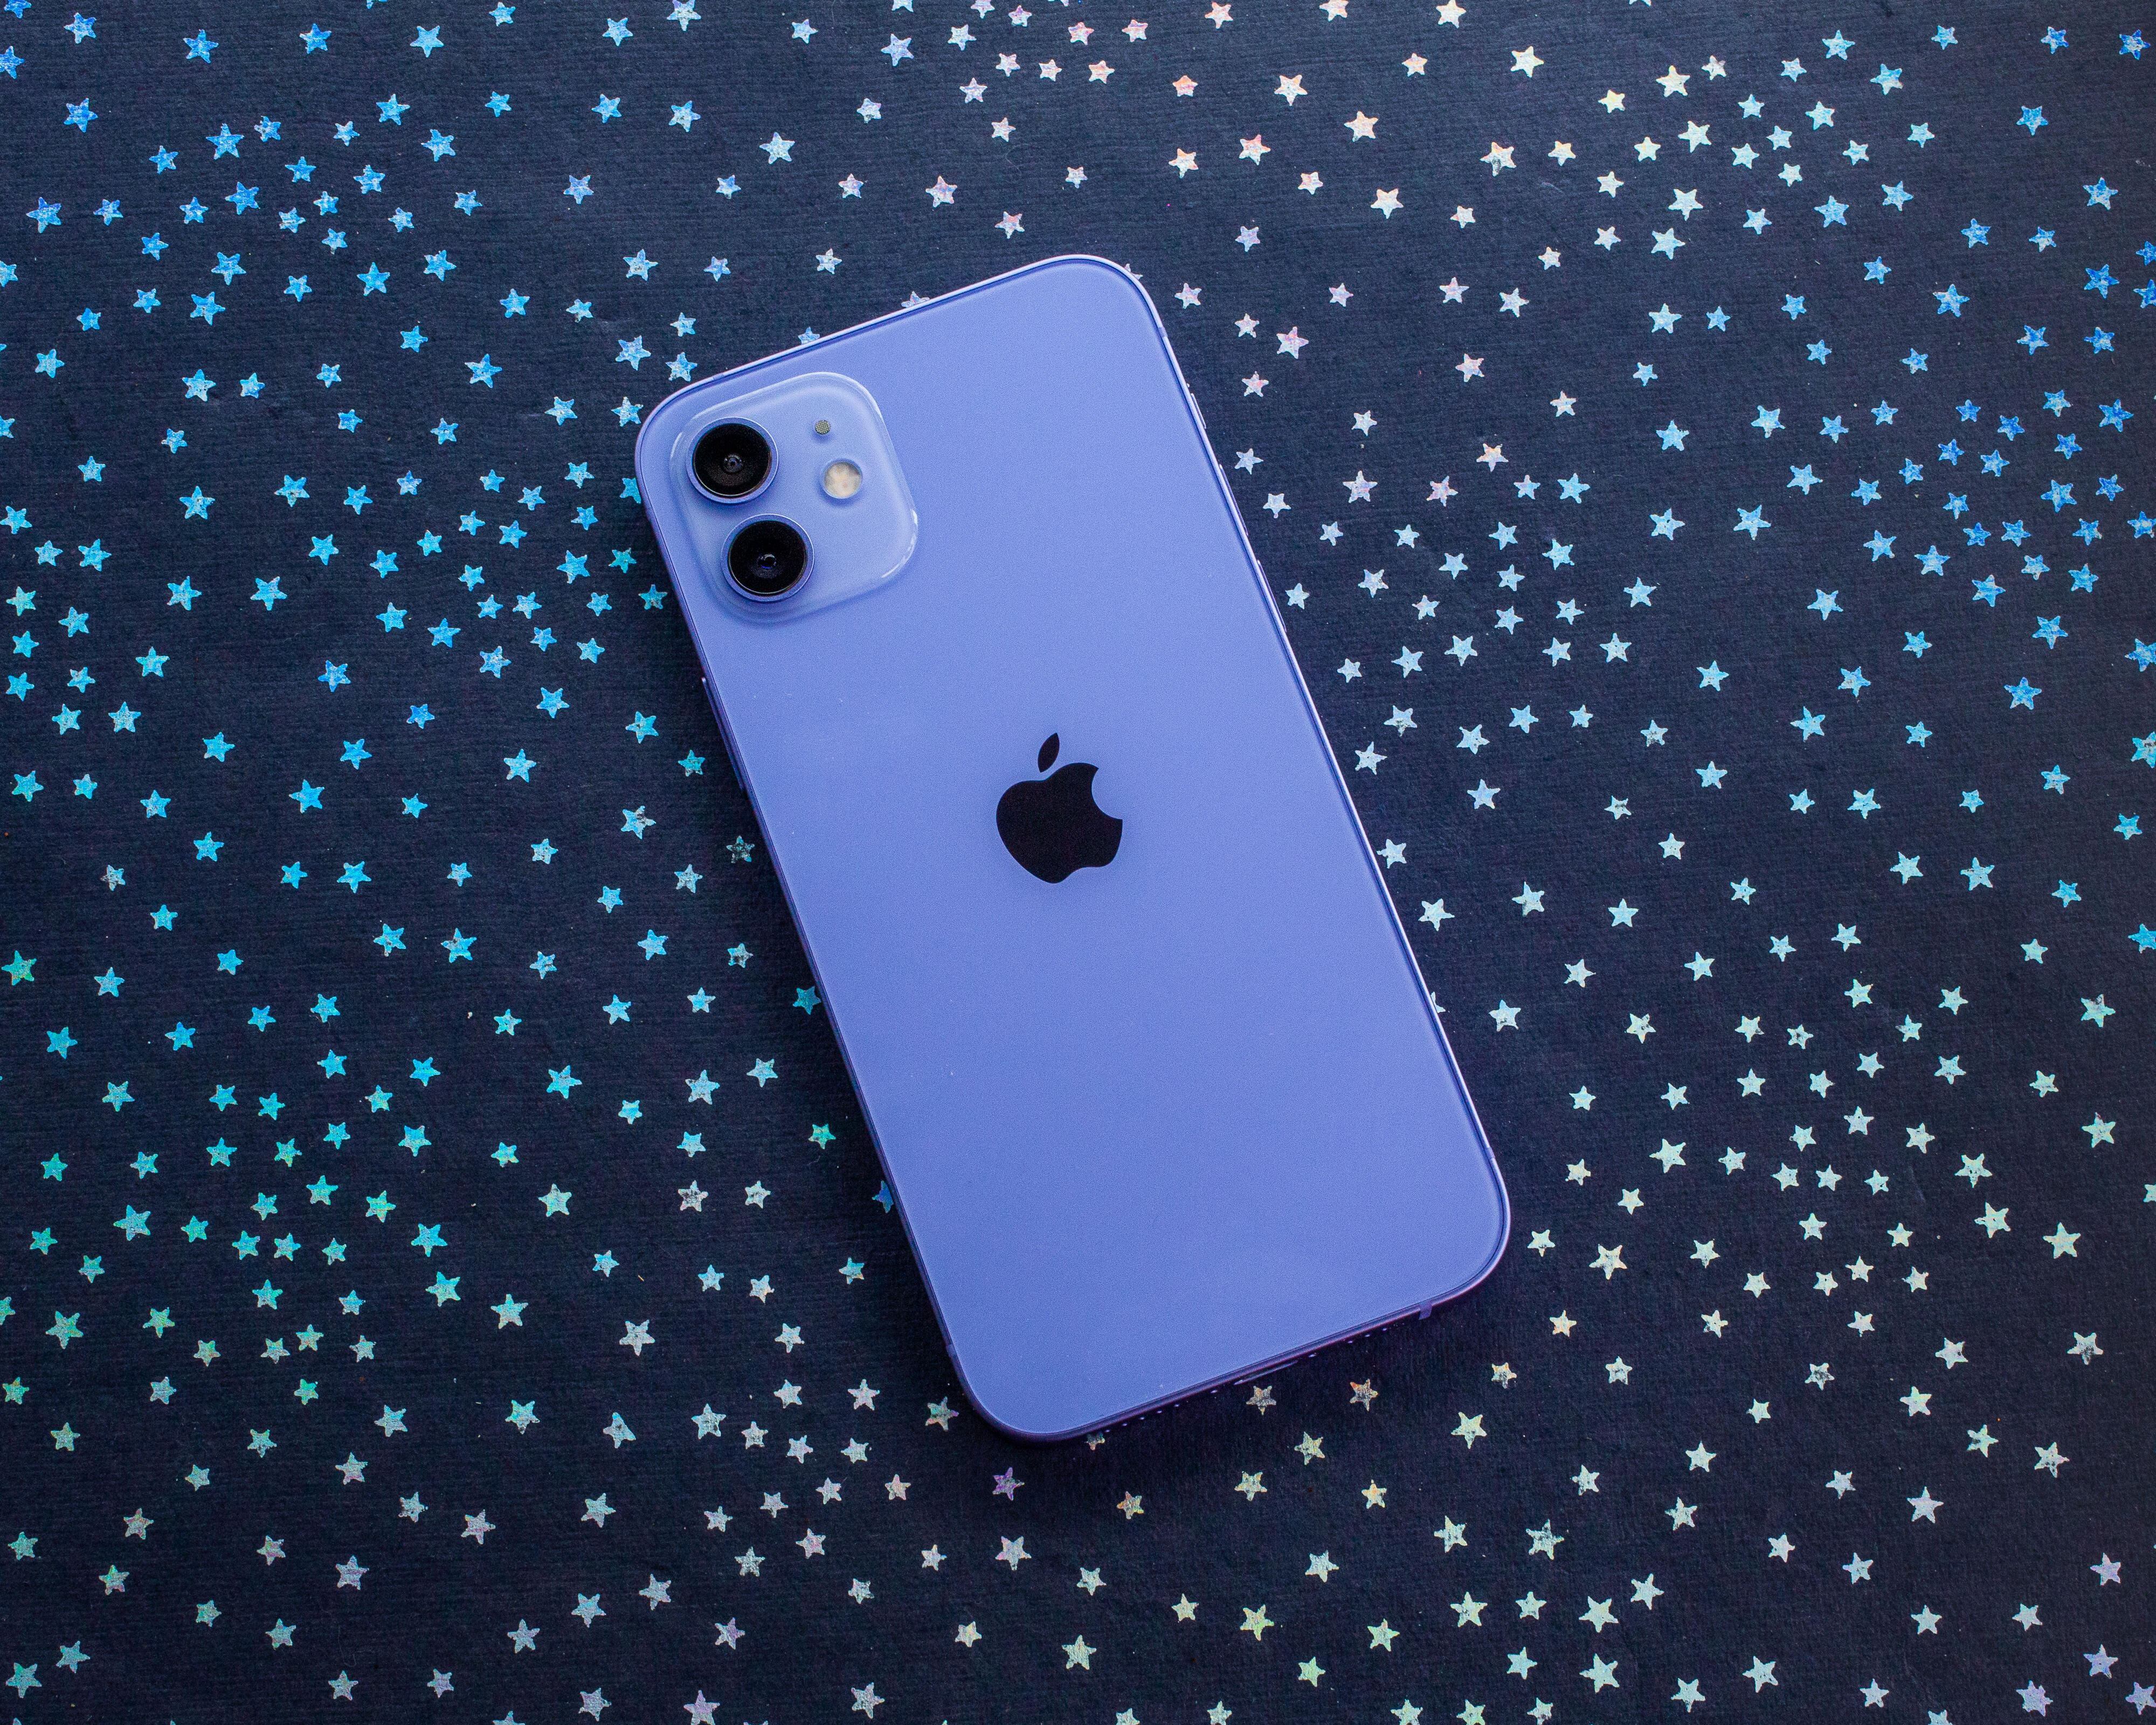 iPhone 13 has big shoes to fill. What will Apple's next big thing be, now that 5G is old news?